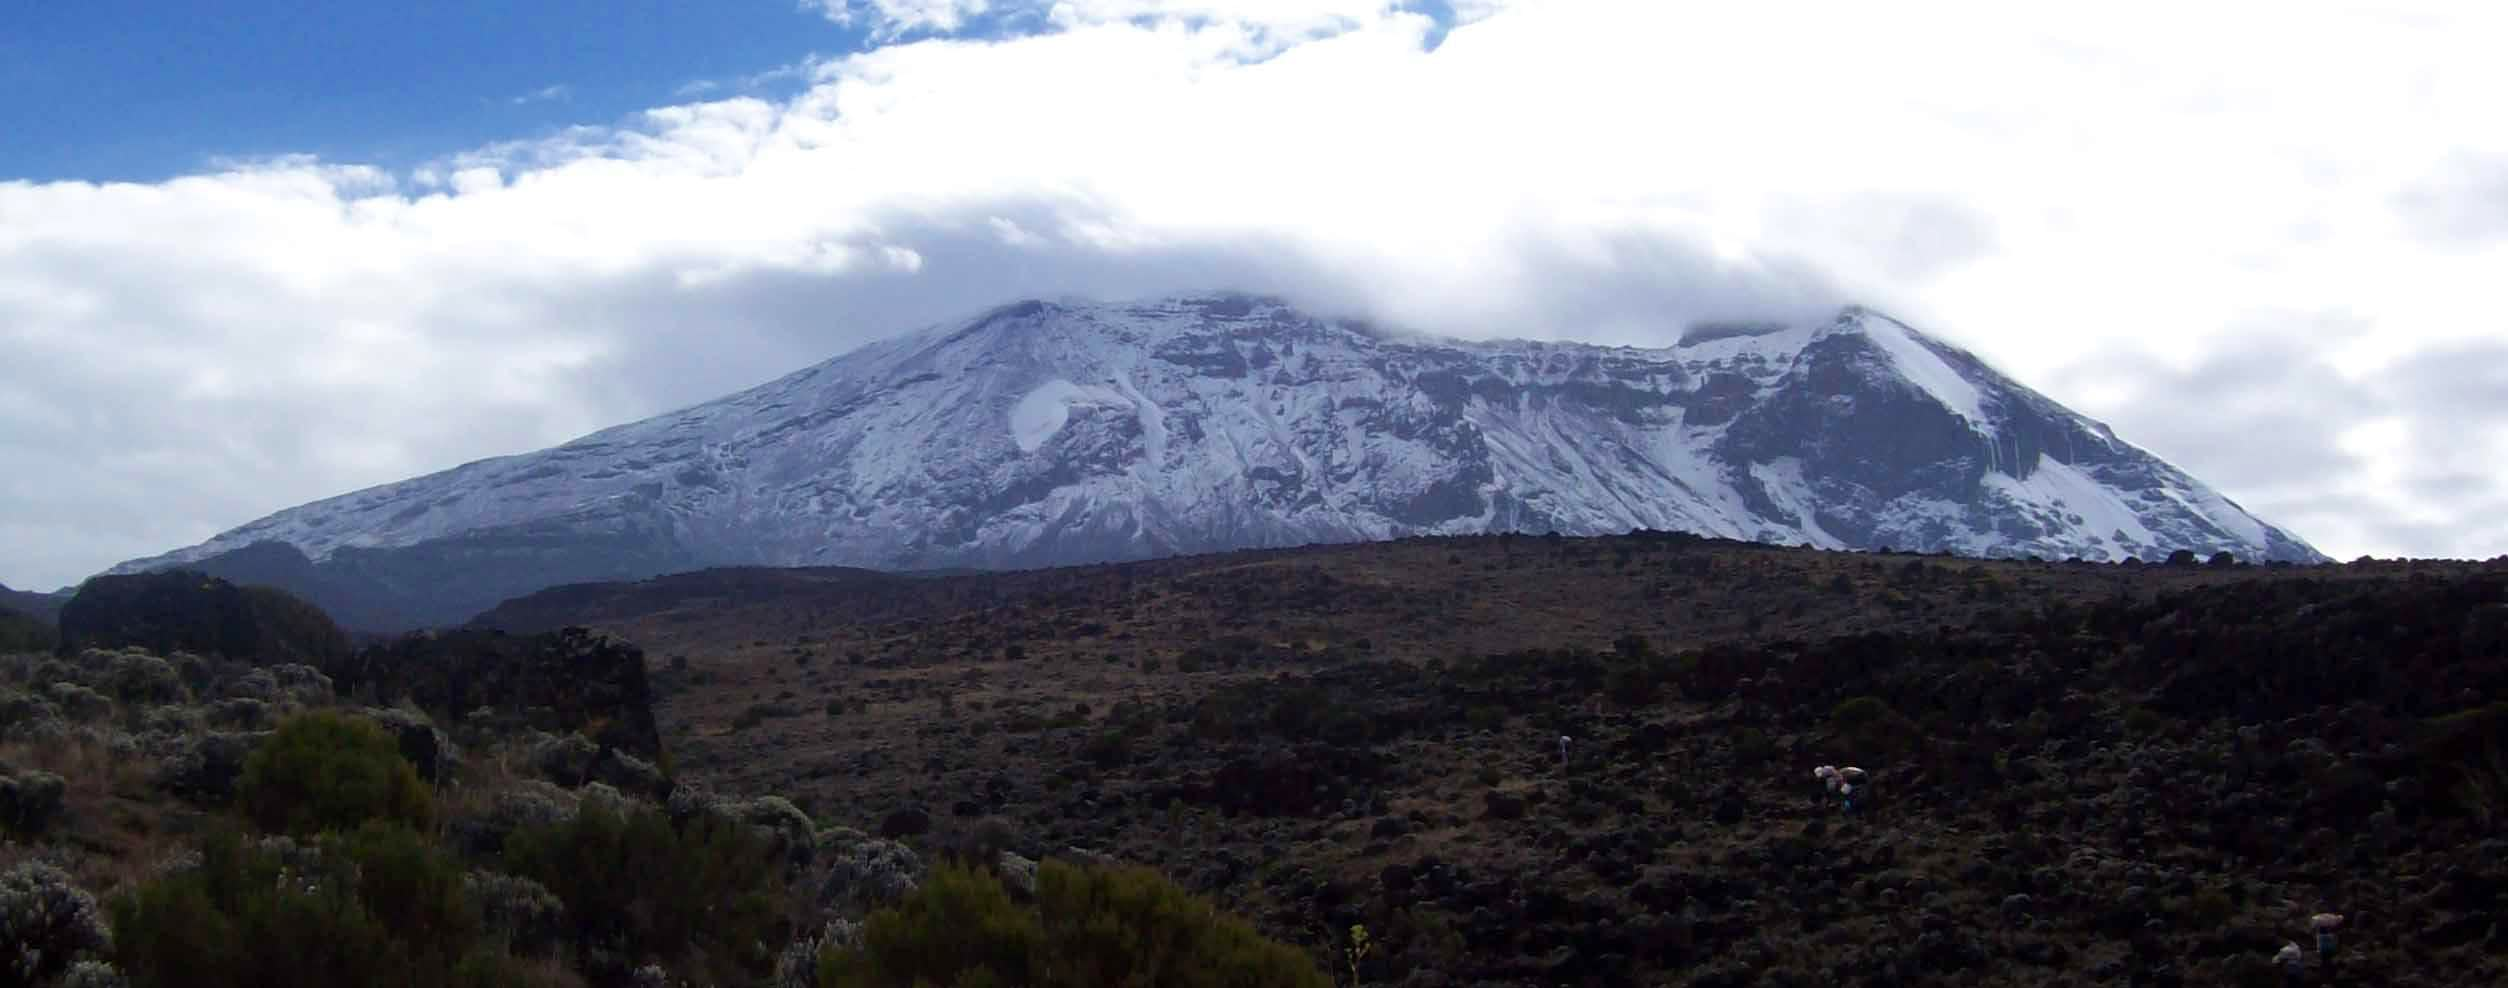 Kilimanjaro - Machame Route 7 day UTM